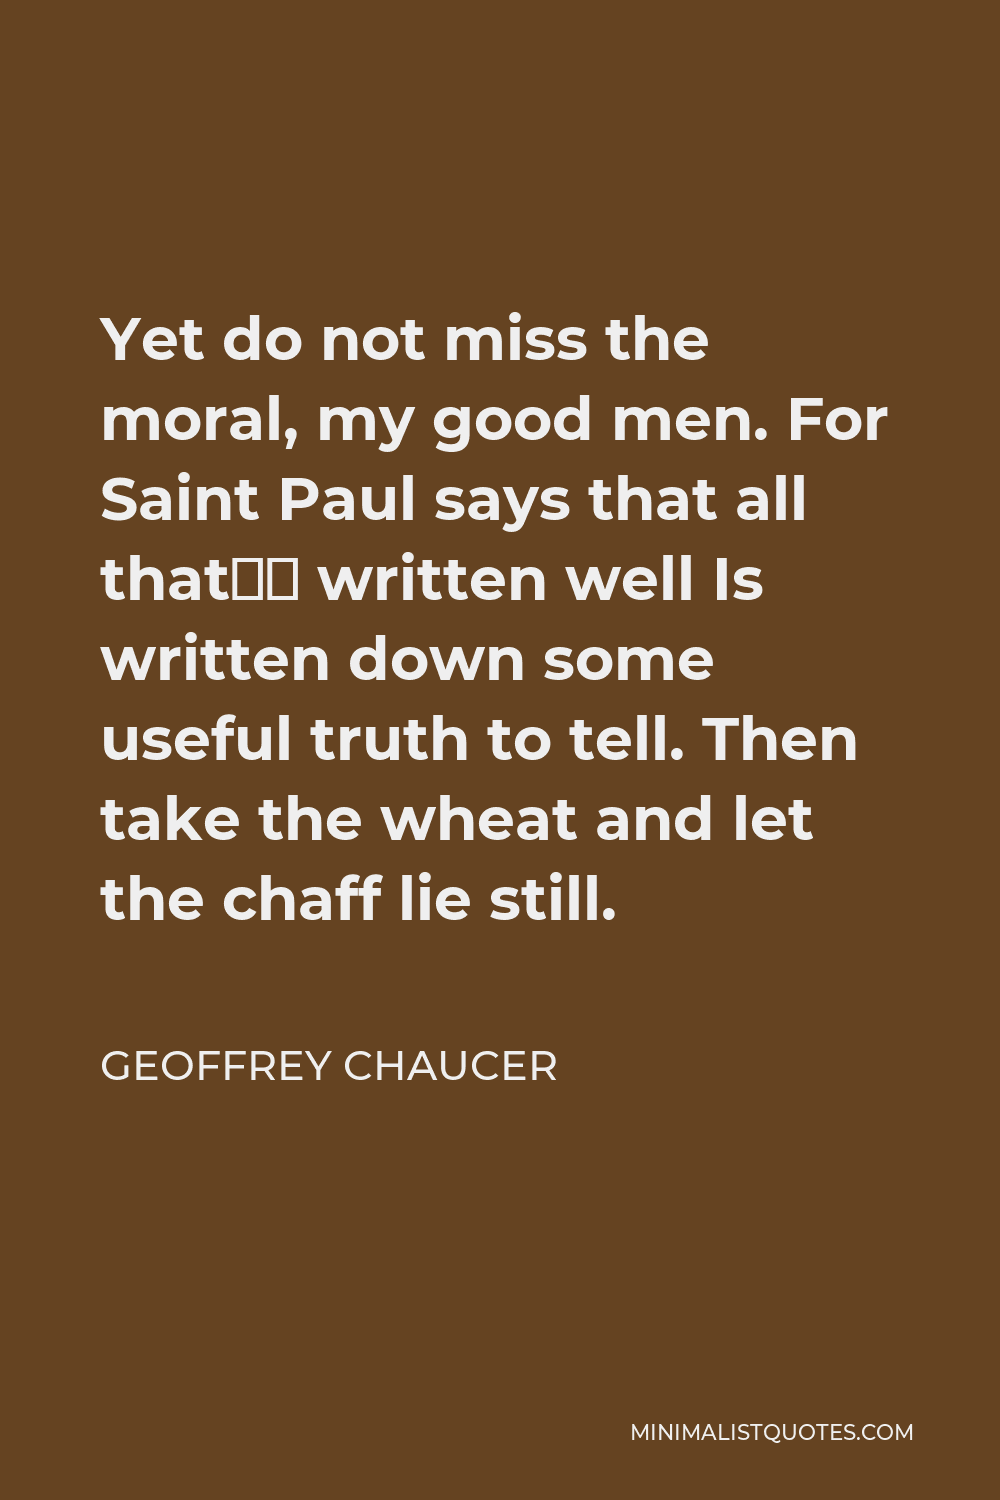 Geoffrey Chaucer Quote - Yet do not miss the moral, my good men. For Saint Paul says that all that's written well Is written down some useful truth to tell. Then take the wheat and let the chaff lie still.